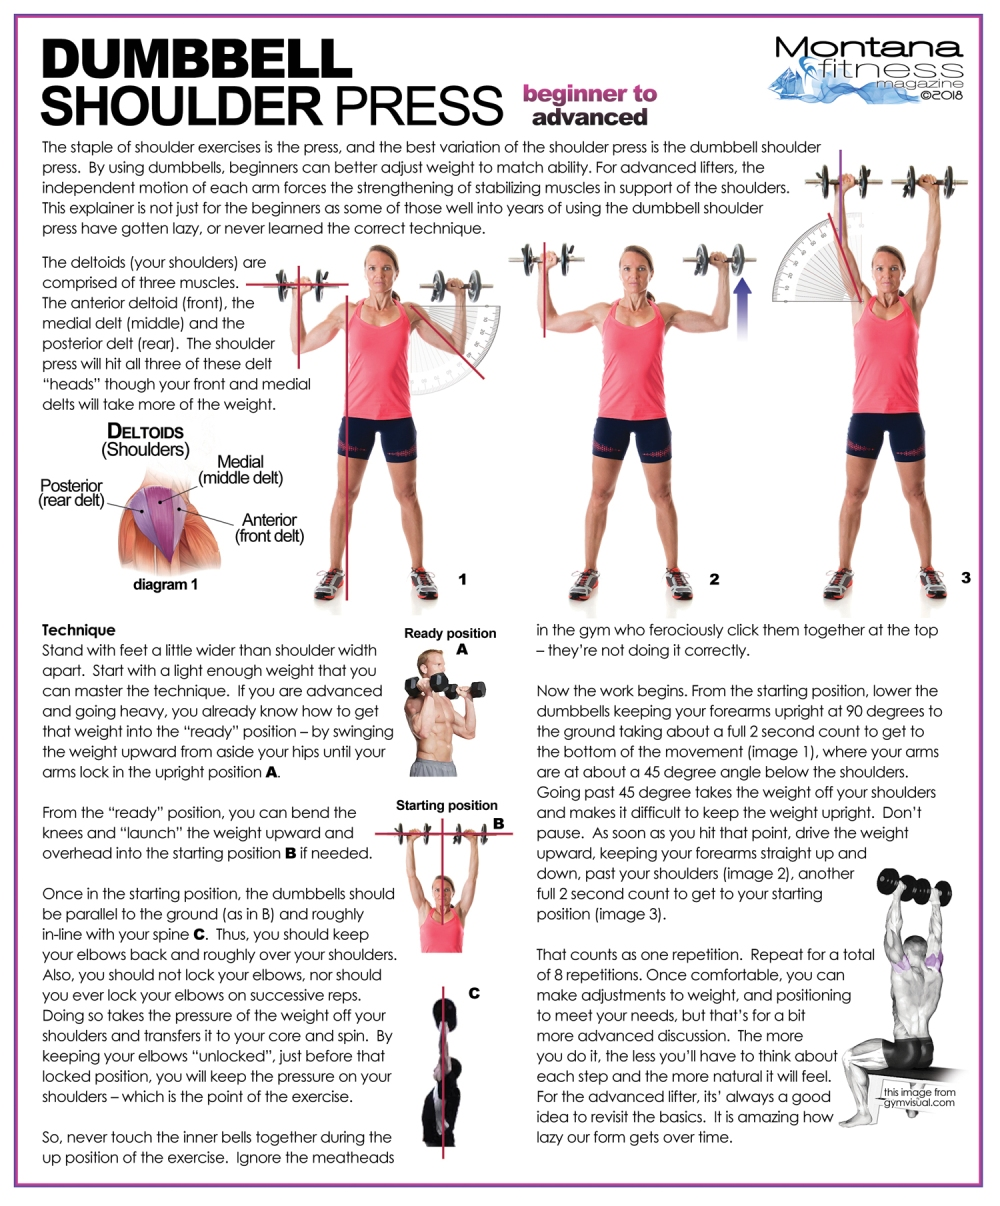 Dumbbell Shoulder Press Montana Fitness Magazine